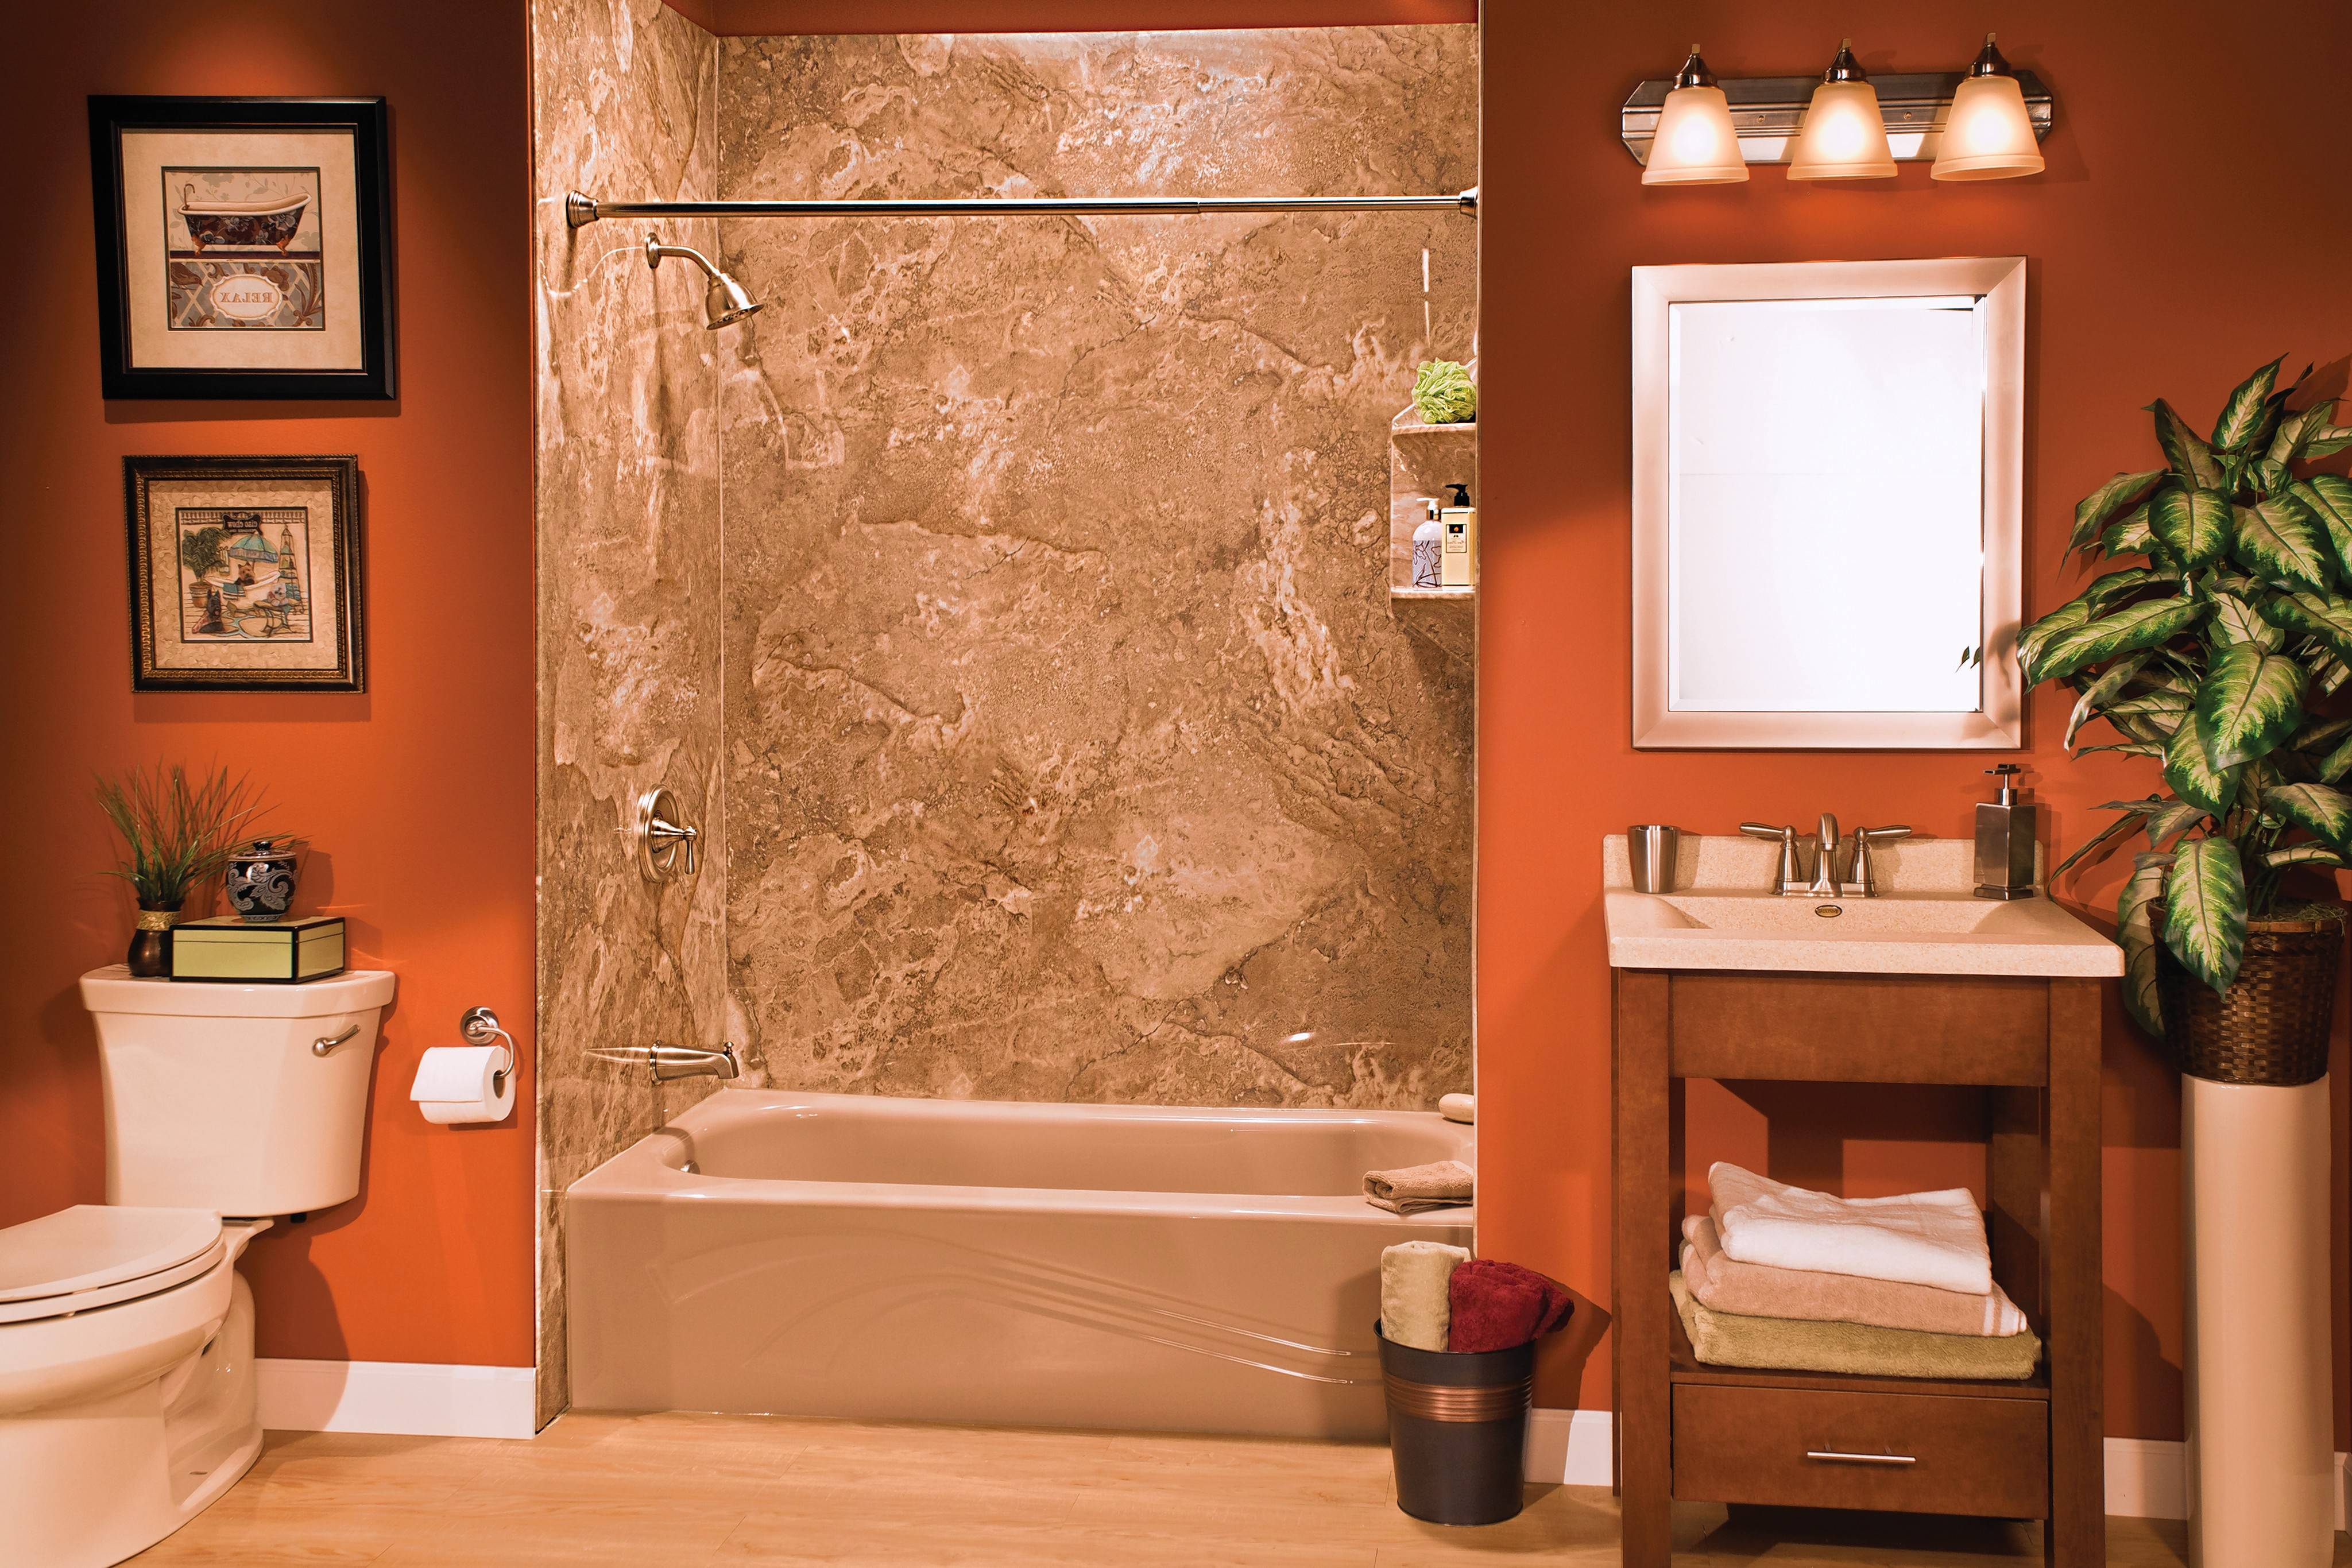 Bath Planet's products feature the elegant look of ceramic tile, granite or marble.